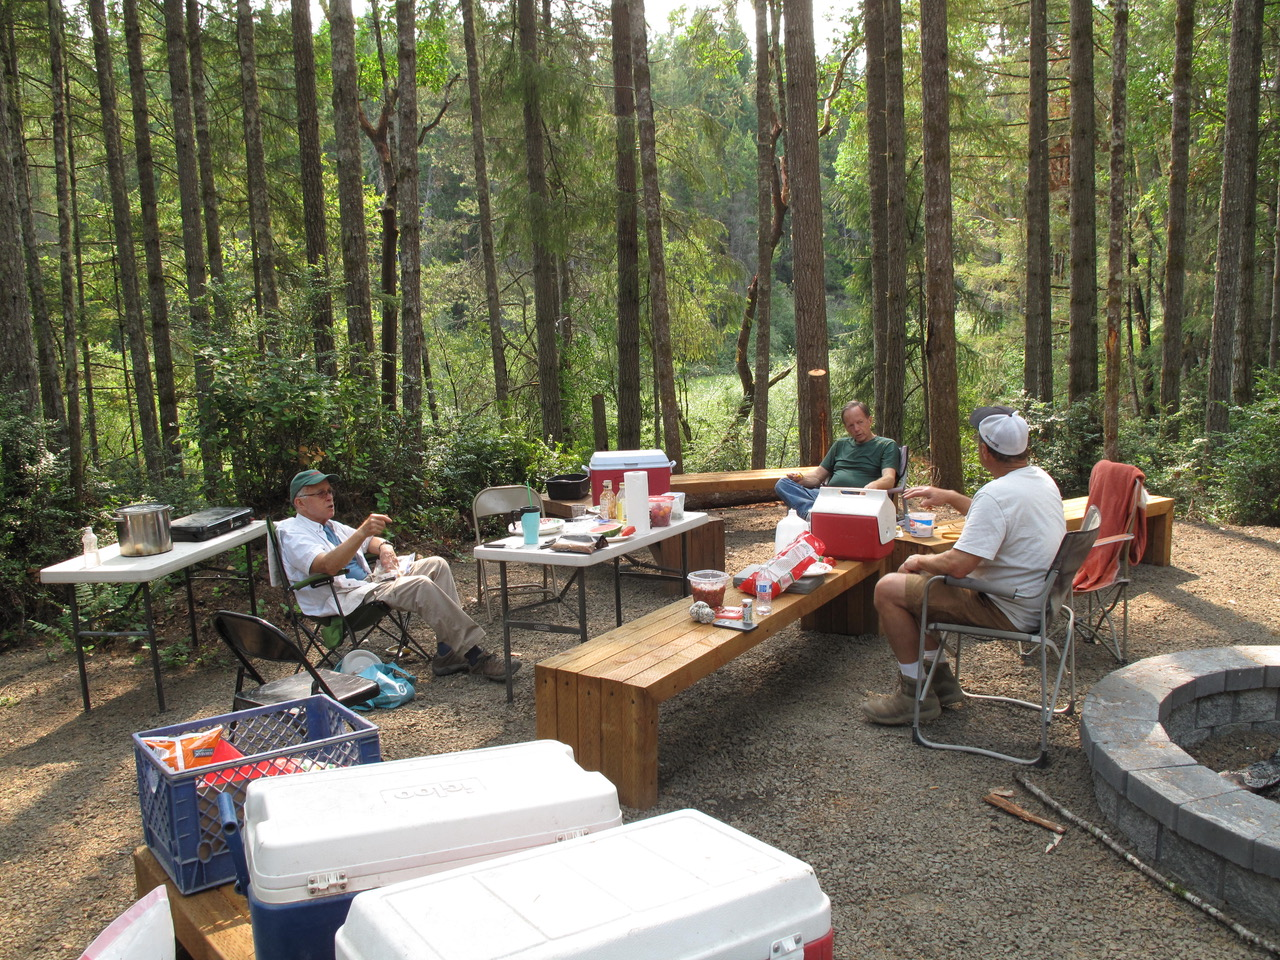 Potluck dinner on August 2, 2017, after a long hot day. Then it was time to hit the sleeping bags.